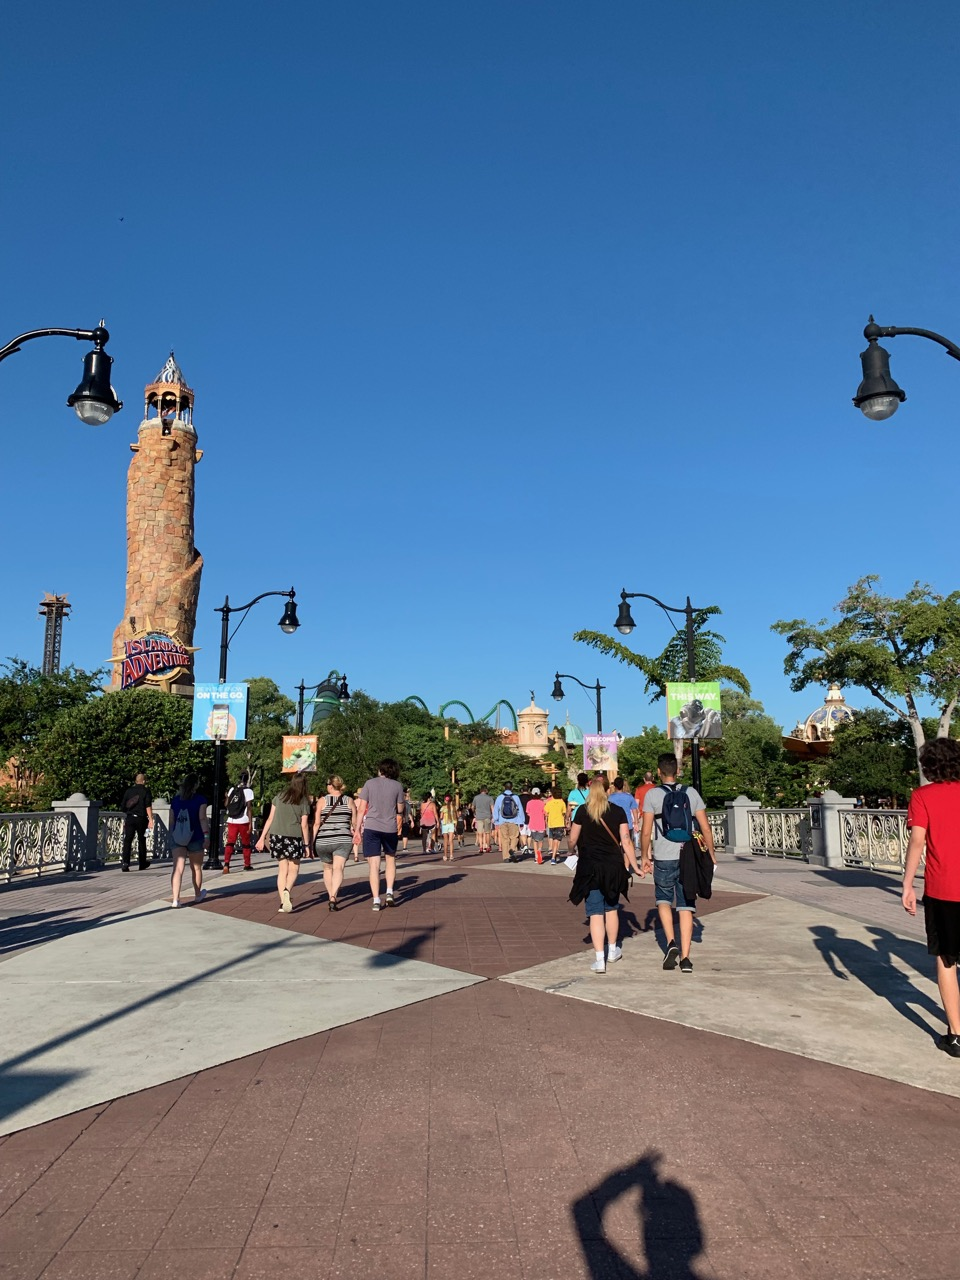 Universal S Islands Of Adventure Rides Guide Best Rides Mouse Hacking